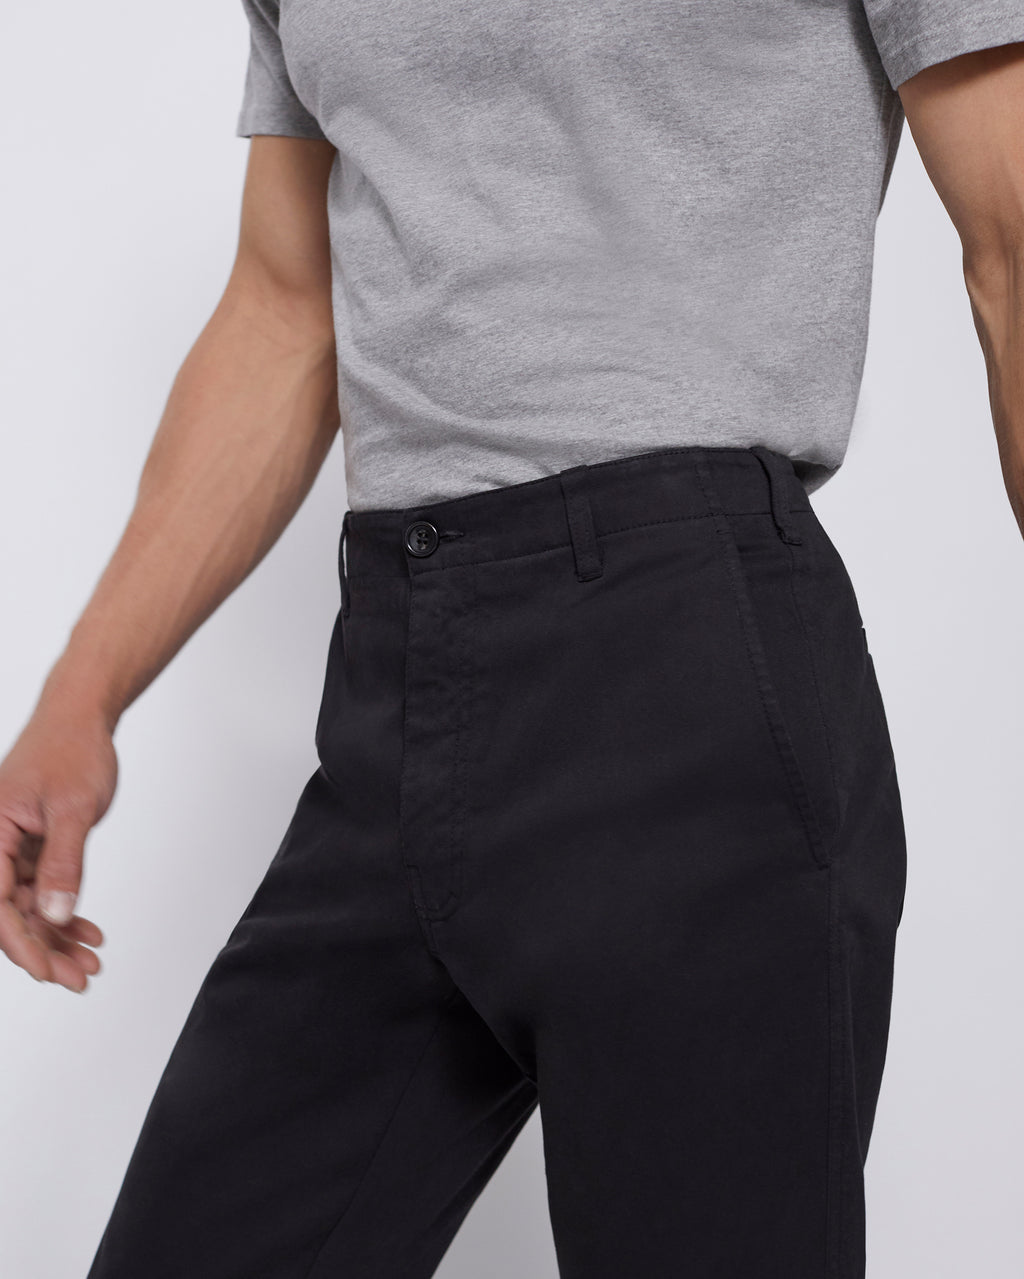 The Modern Slim Trouser in Black